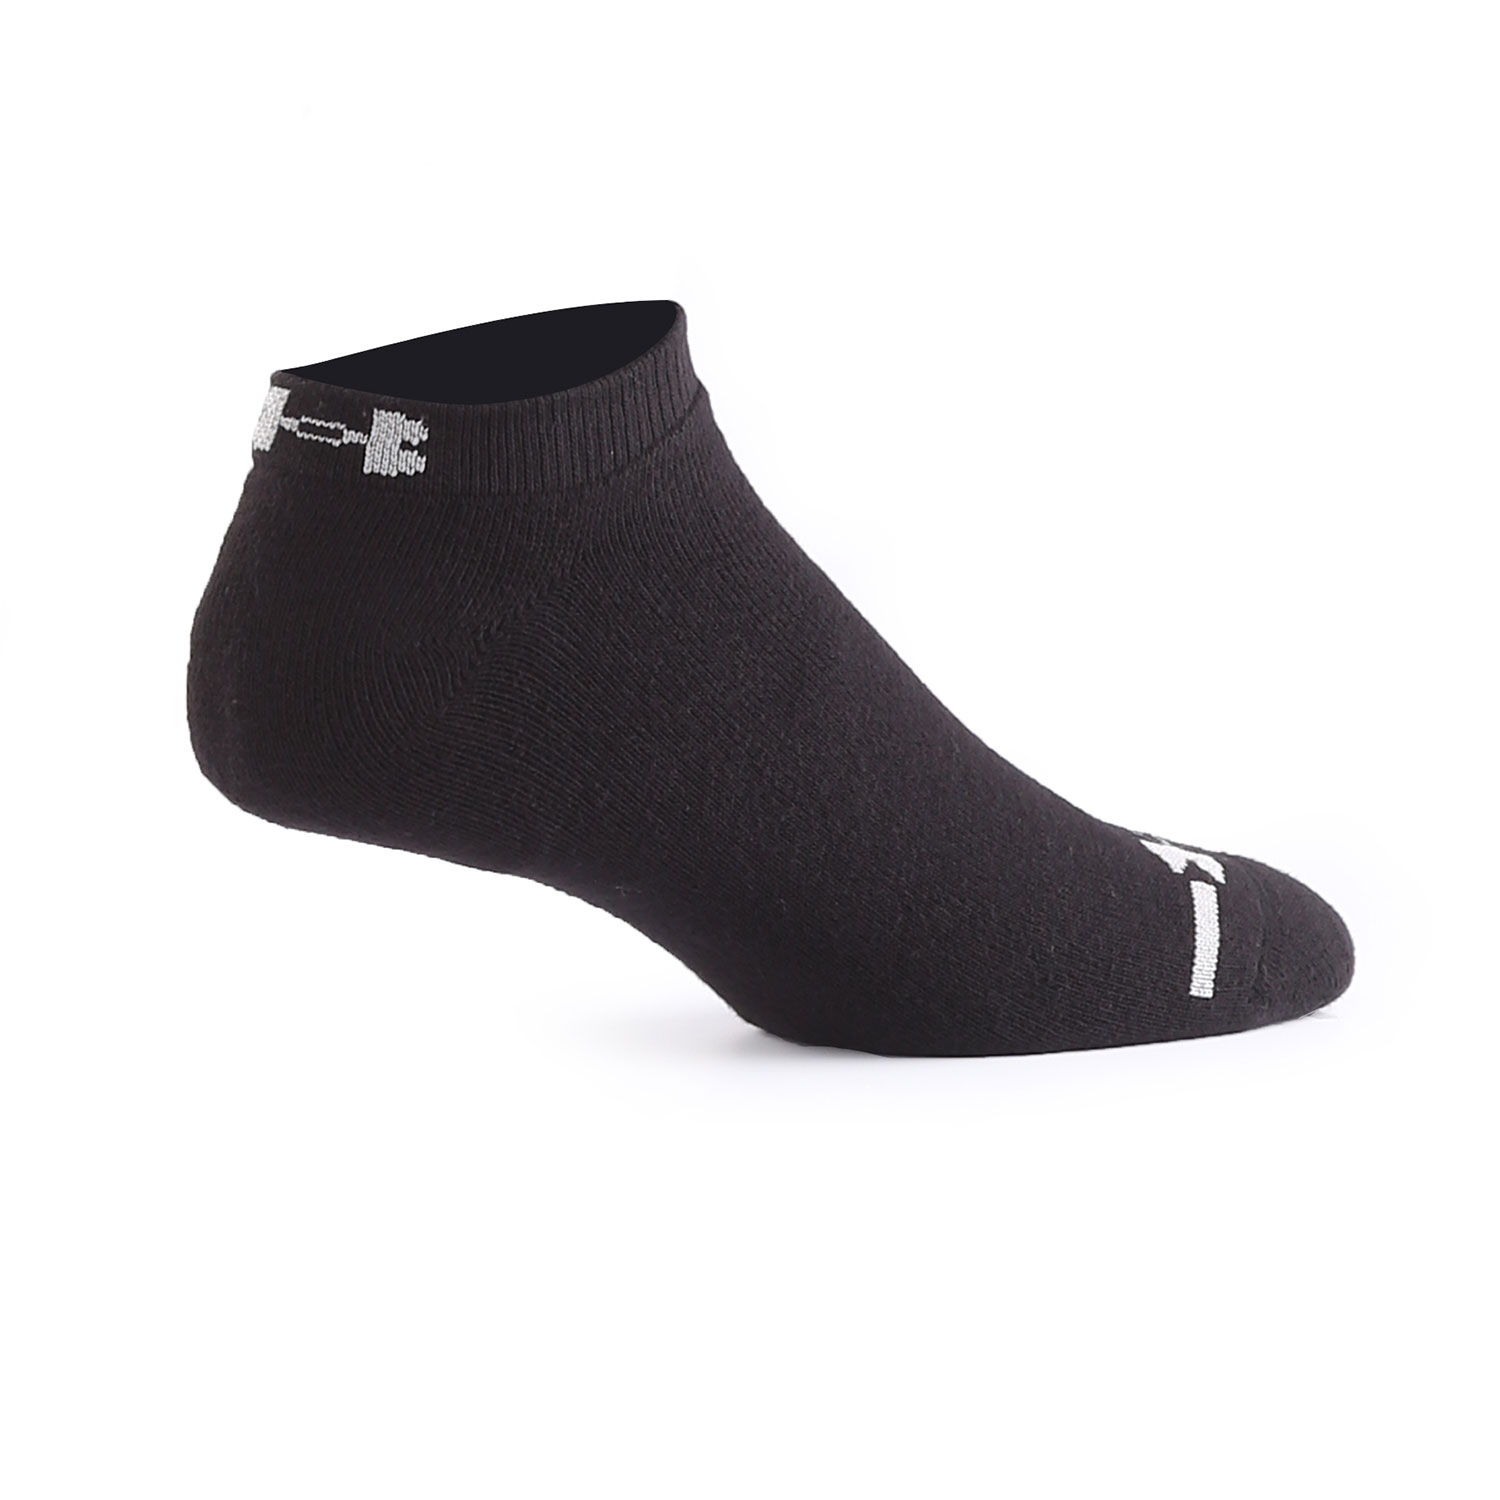 Under Armour Charged Cotton No-Show Socks 6 Pack